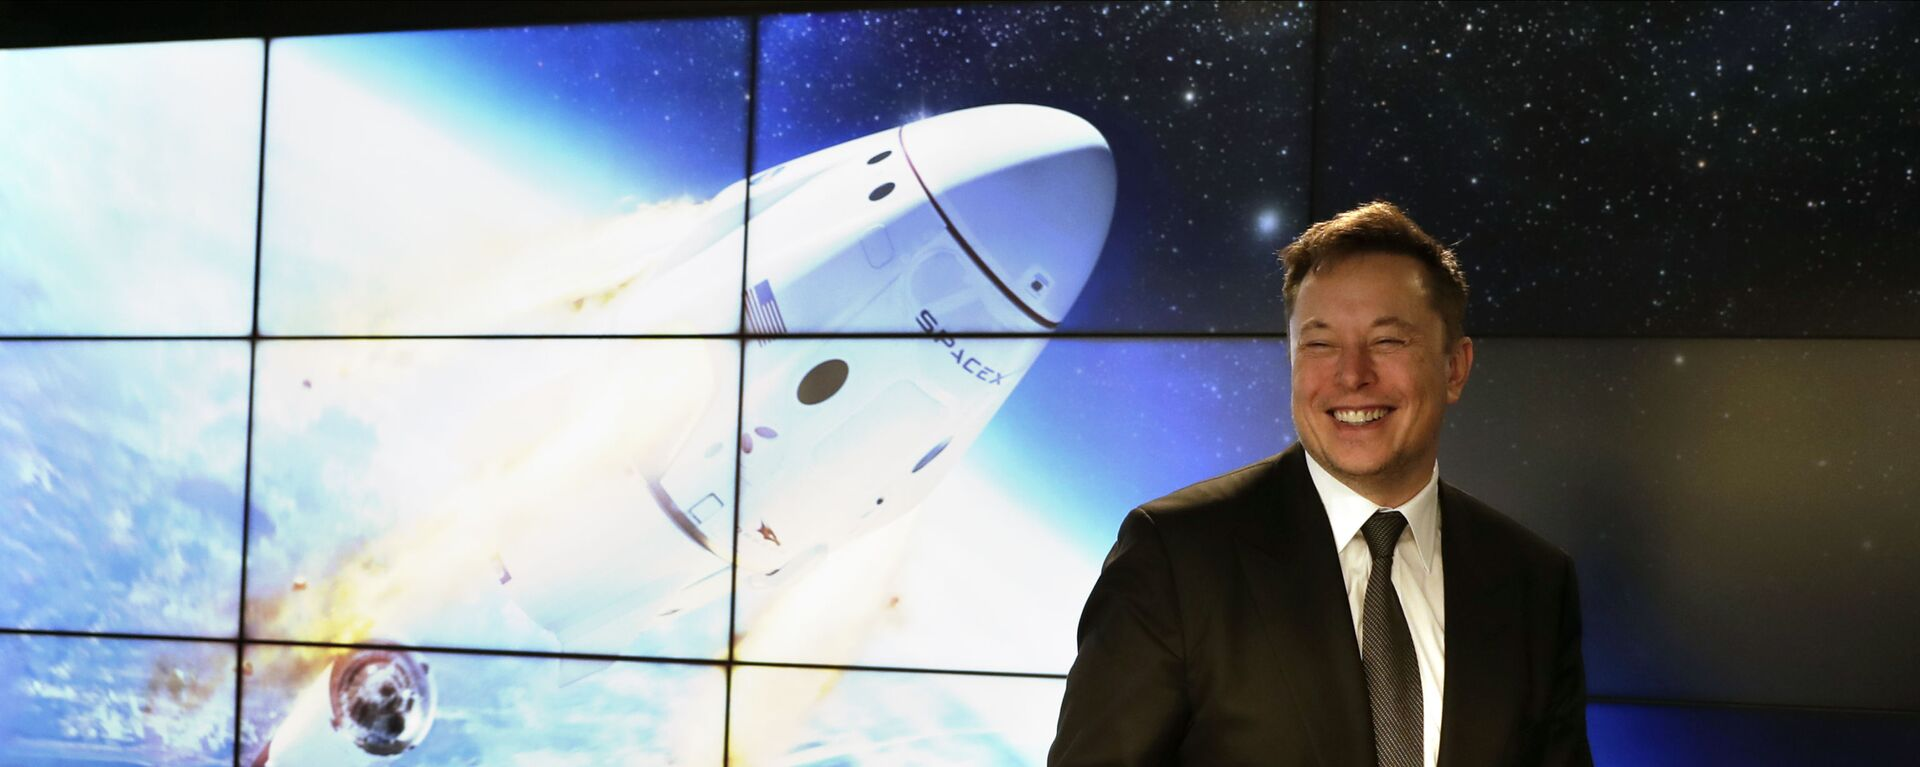 Elon Musk, founder, CEO, and chief engineer/designer of SpaceX speaks during a news conference after a Falcon 9 SpaceX rocket test flight to demonstrate the capsule's emergency escape system at the Kennedy Space Center in Cape Canaveral, Fla., Sunday, Jan. 19, 2020 - Sputnik Italia, 1920, 07.05.2021